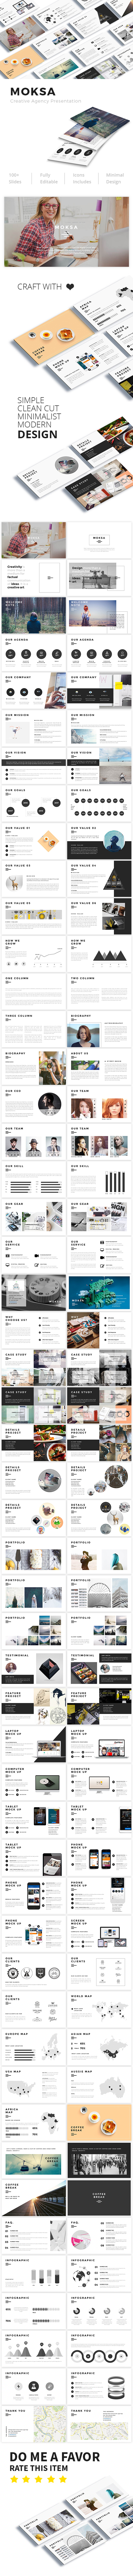 Moksa - Creative Agency Google Slide Presentation - Google Slides Presentation Templates